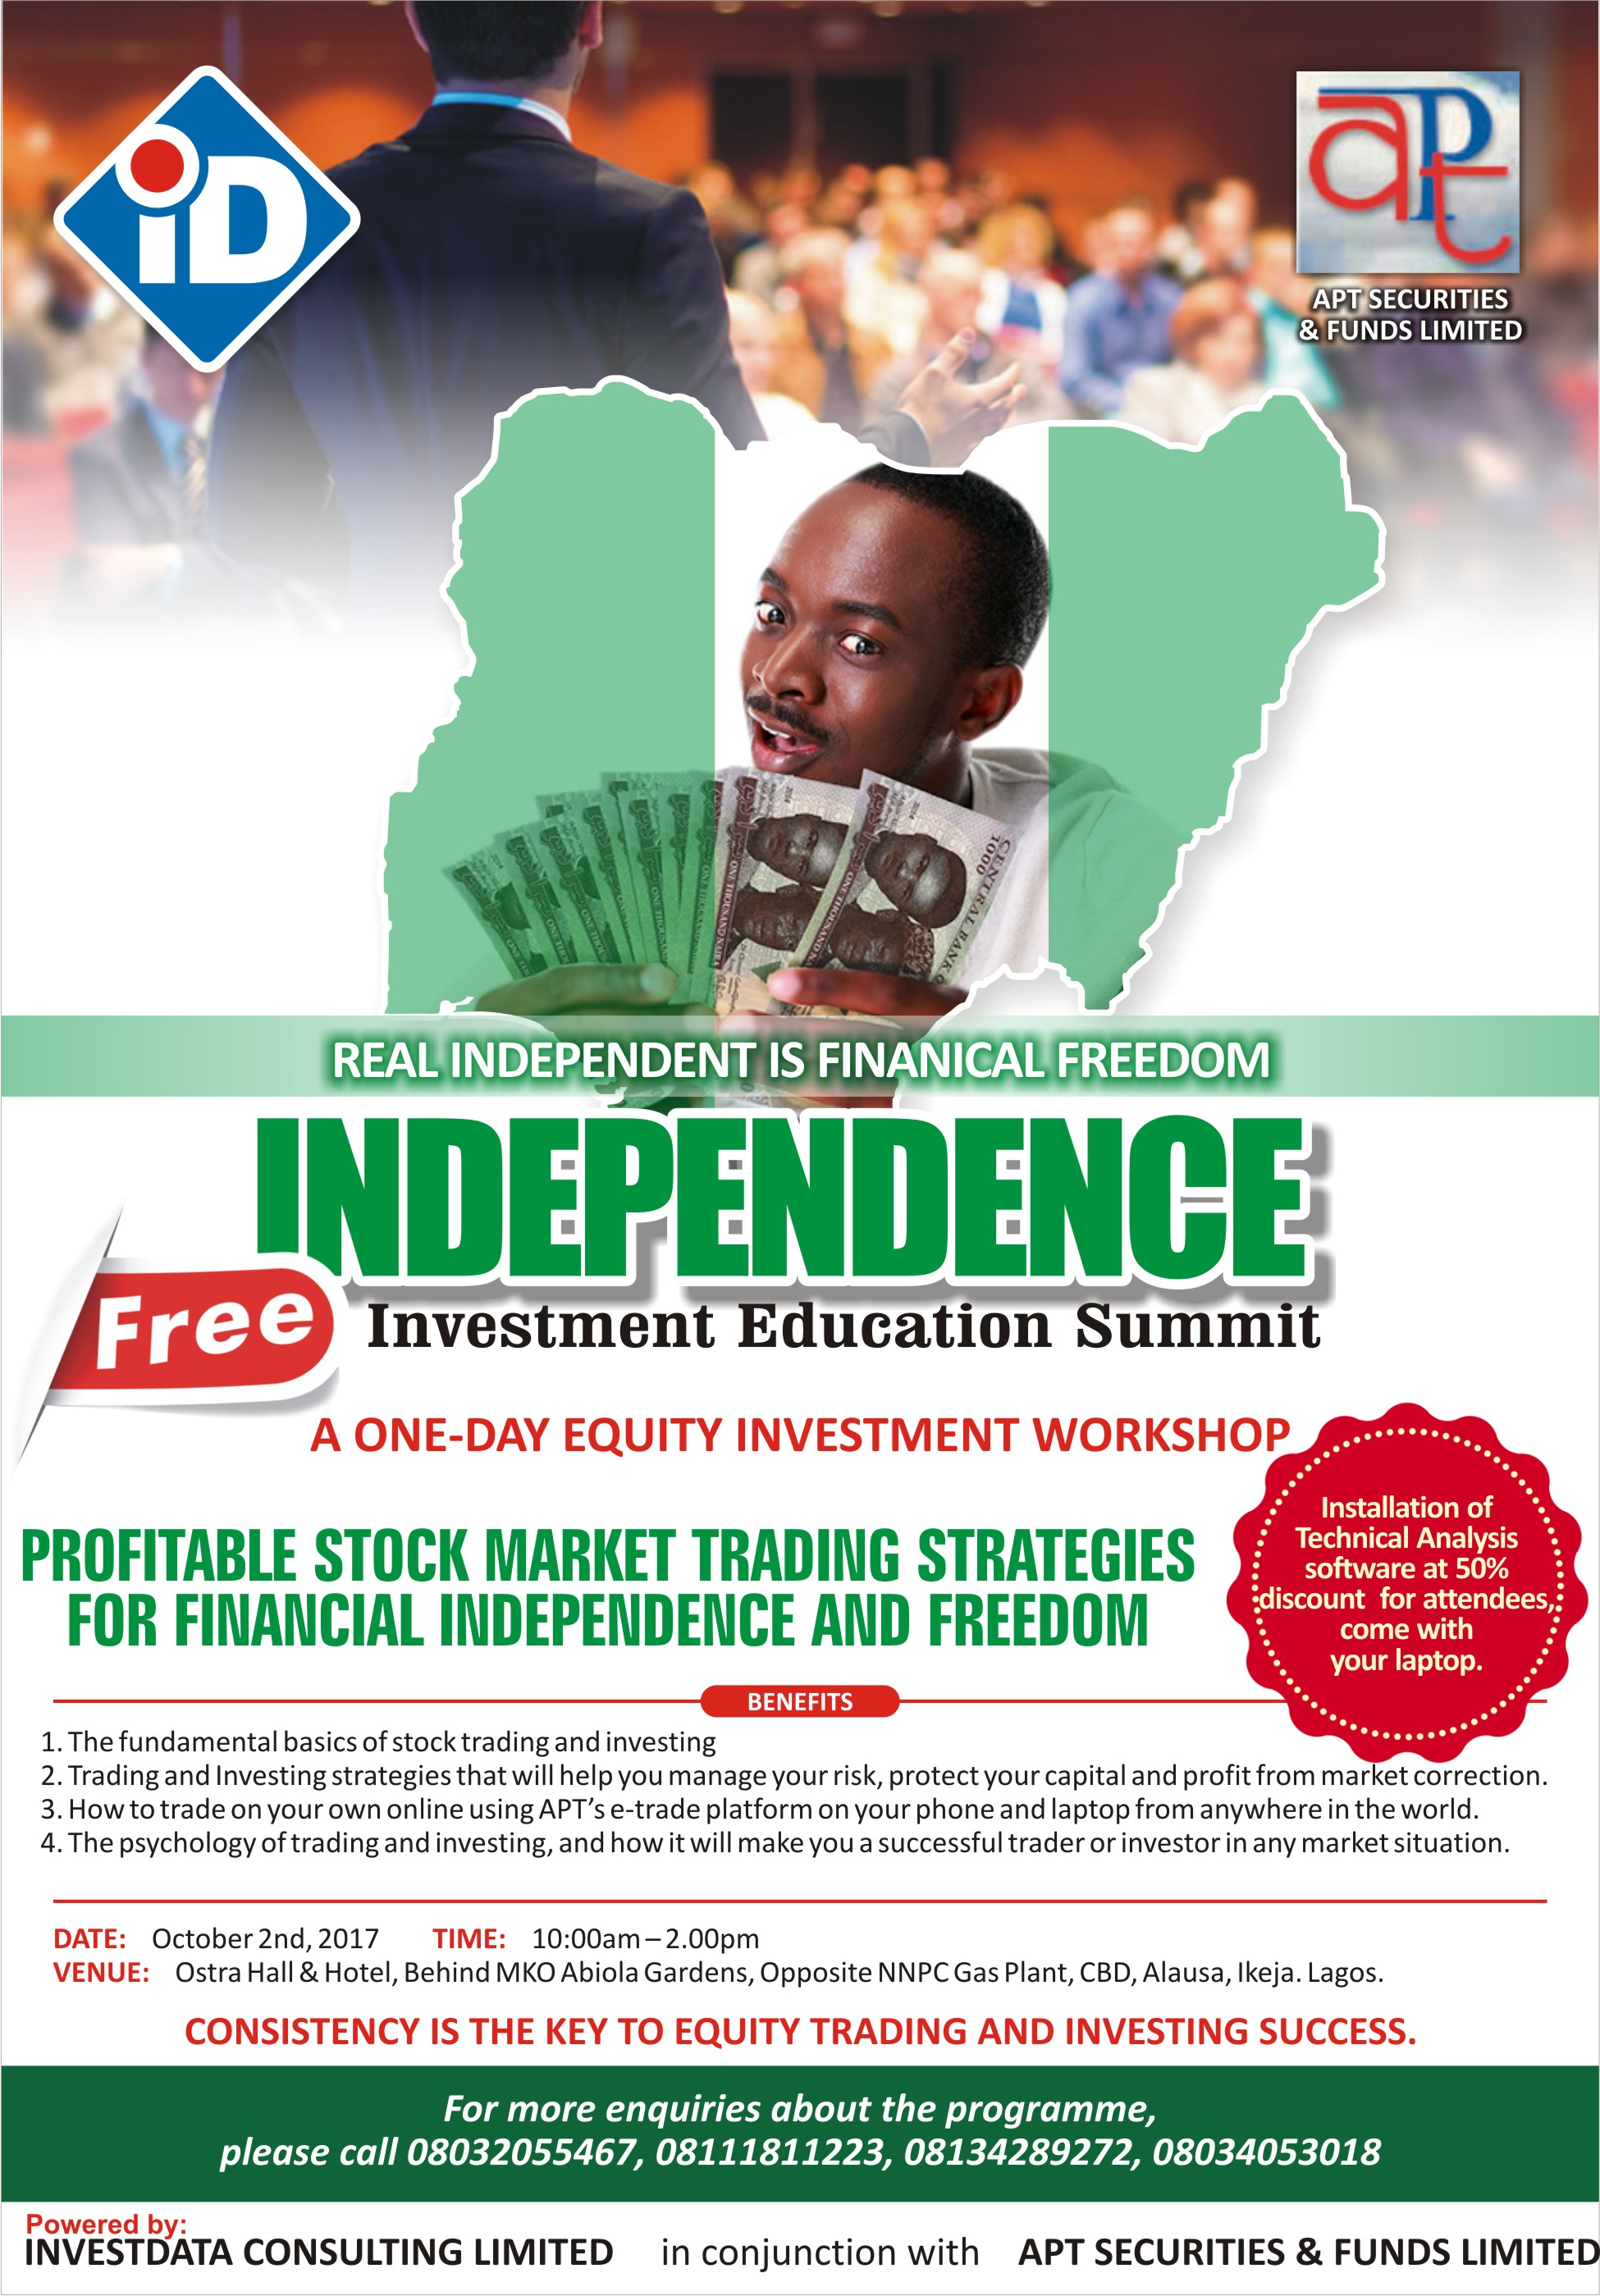 Investdata, APT Securities Host Free Equity Investment Education Workshop